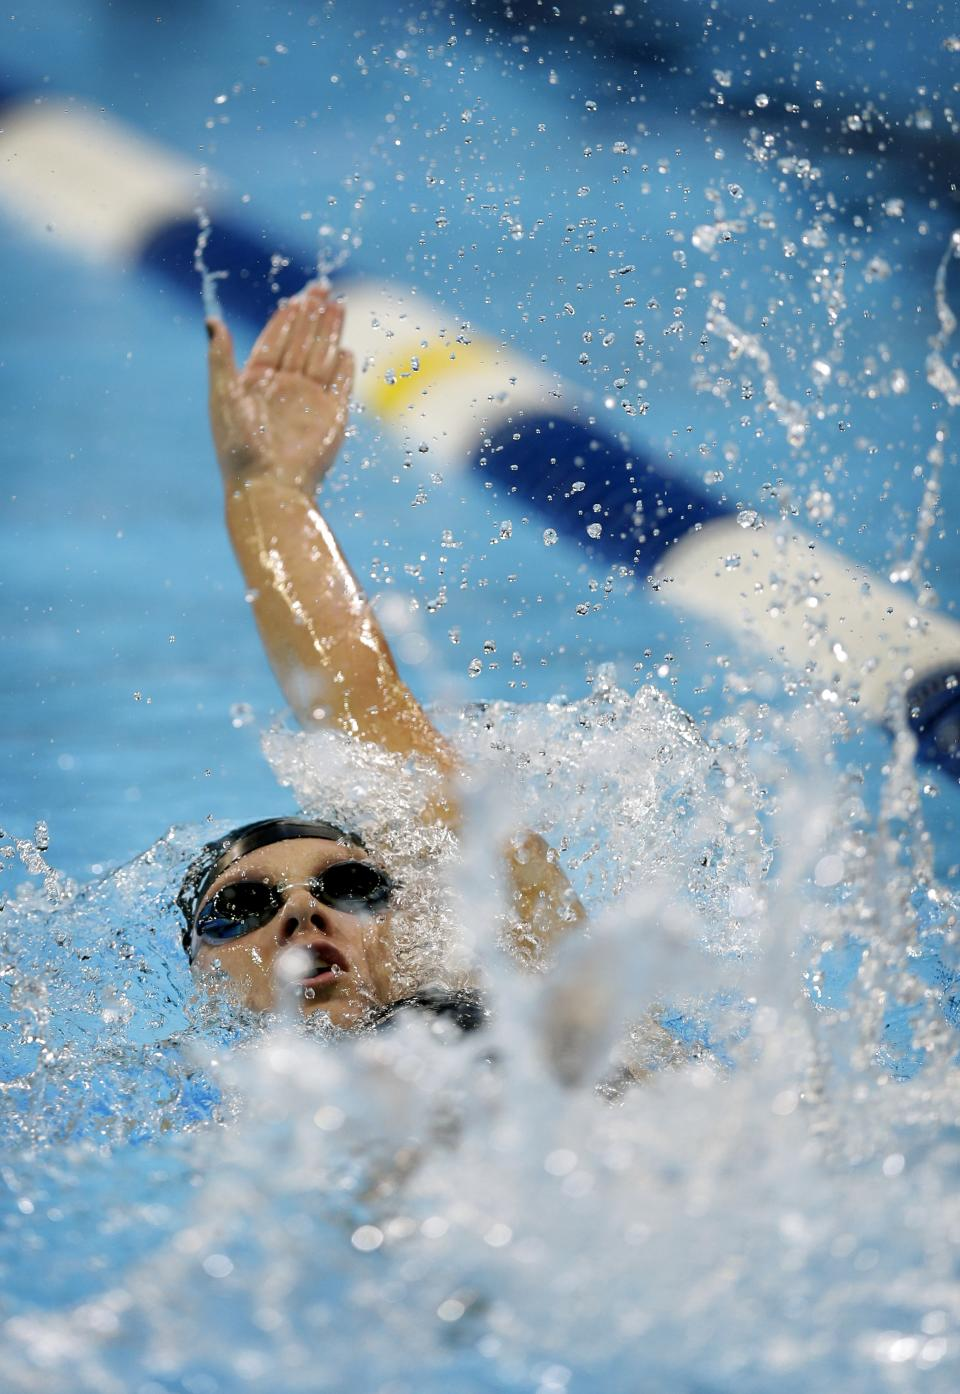 Ella Eastin swims in the women's 100-meter backstroke preliminaries at the U.S. Olympic swimming trials, Tuesday, June 26, 2012, in Omaha, Neb. (AP Photo/David J. Phillip)